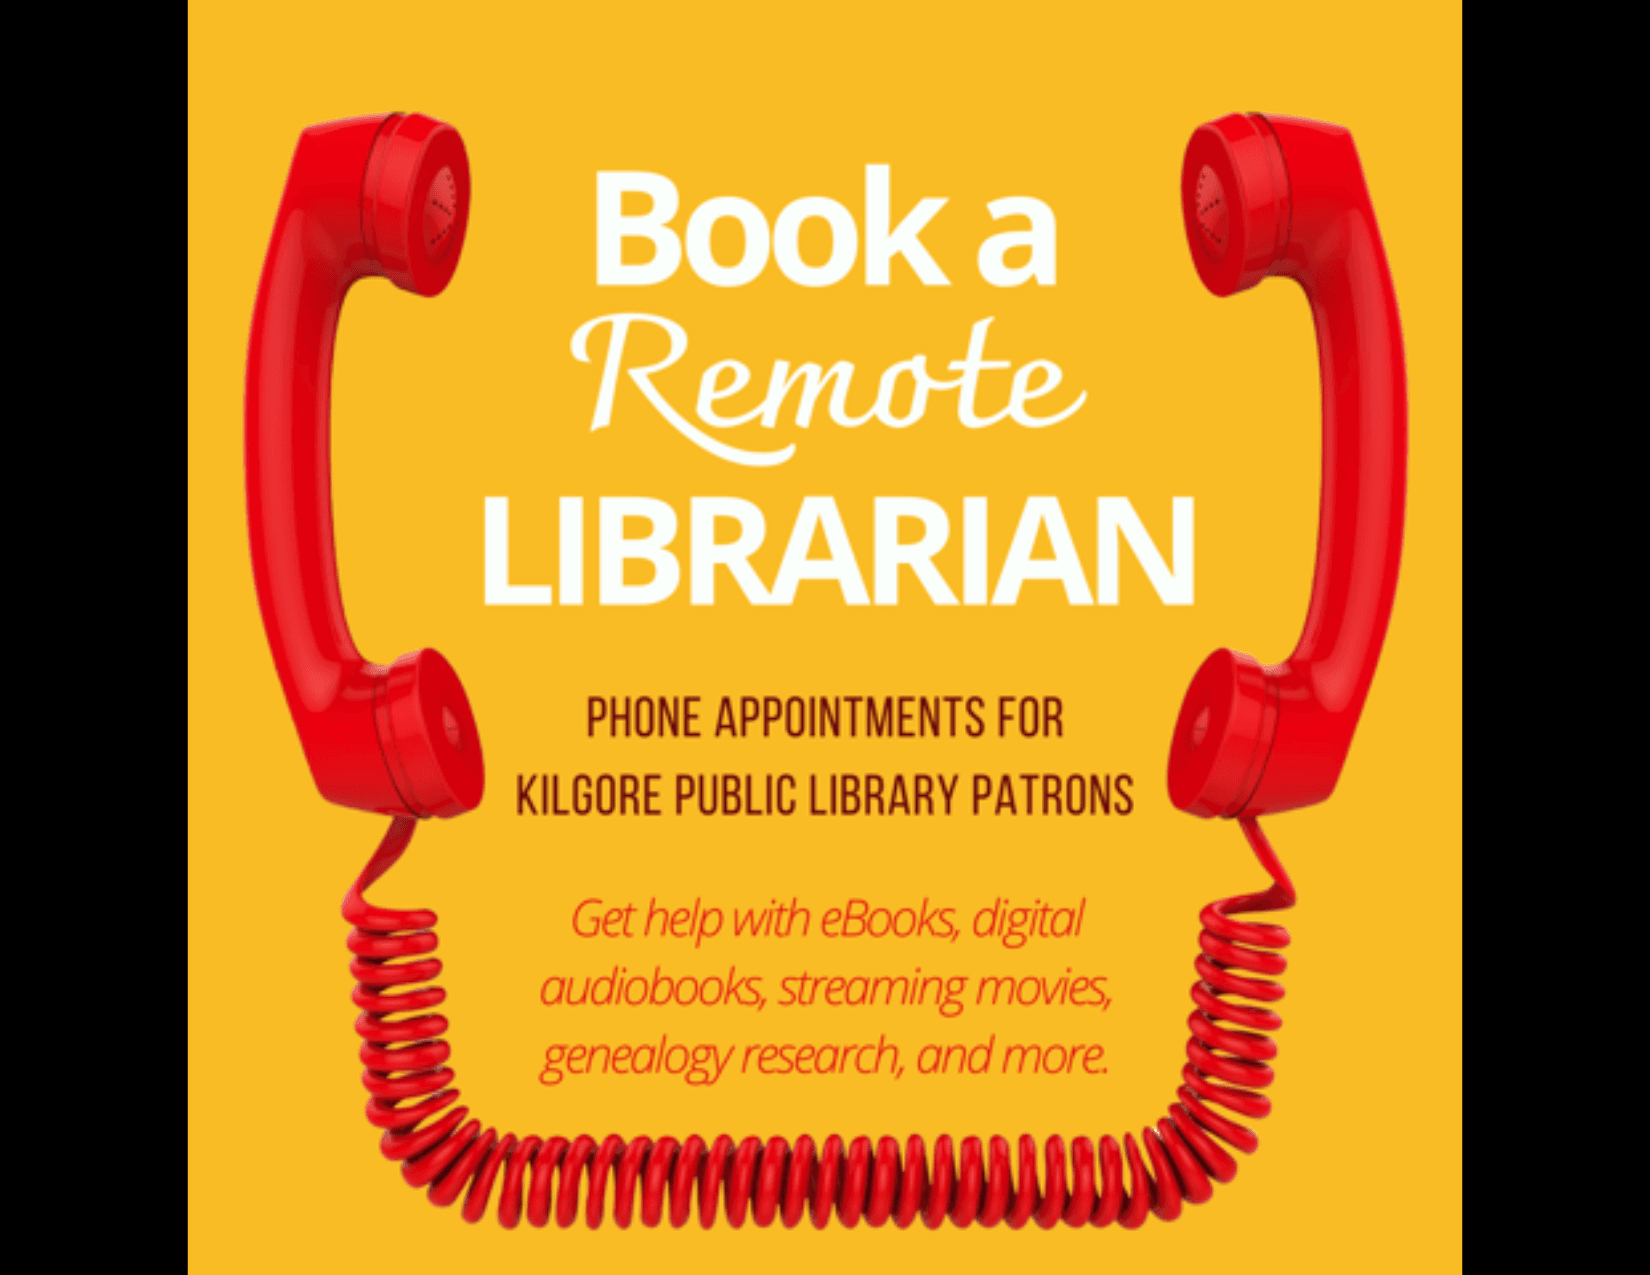 Book a Remote Librarian